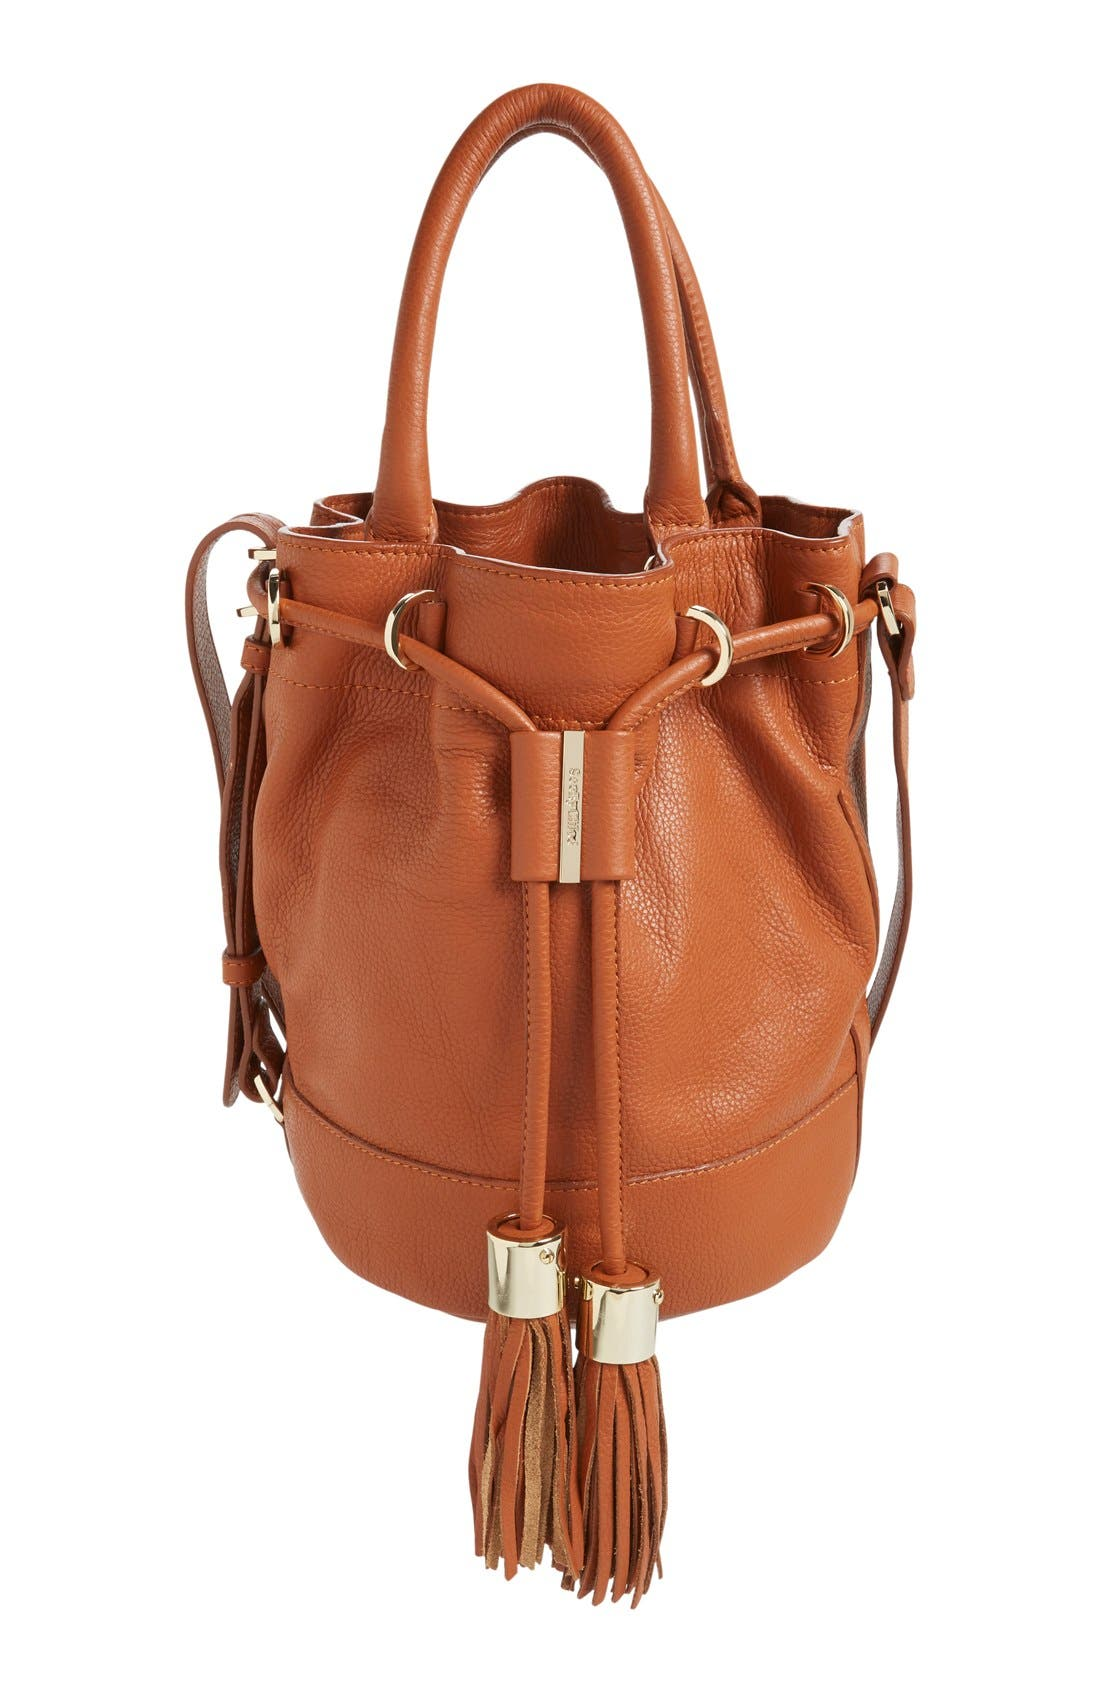 Main Image - See by Chloé 'Vicki' Small Leather Bucket Bag